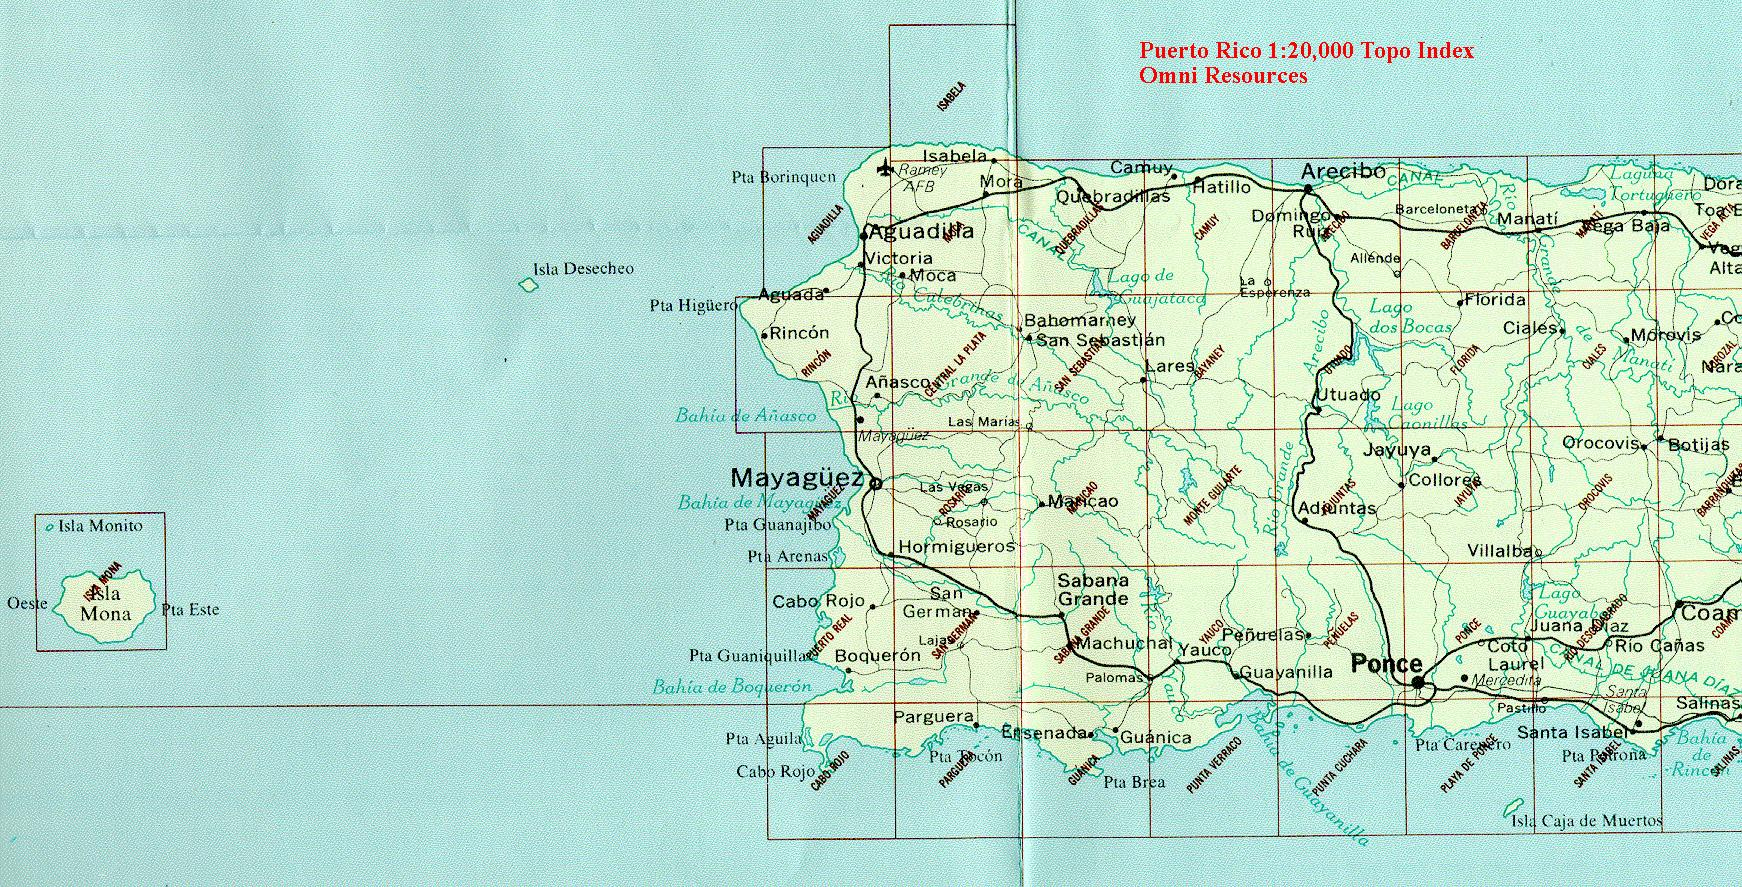 Puerto Rico Maps From Omni Resources - Maps puerto rico